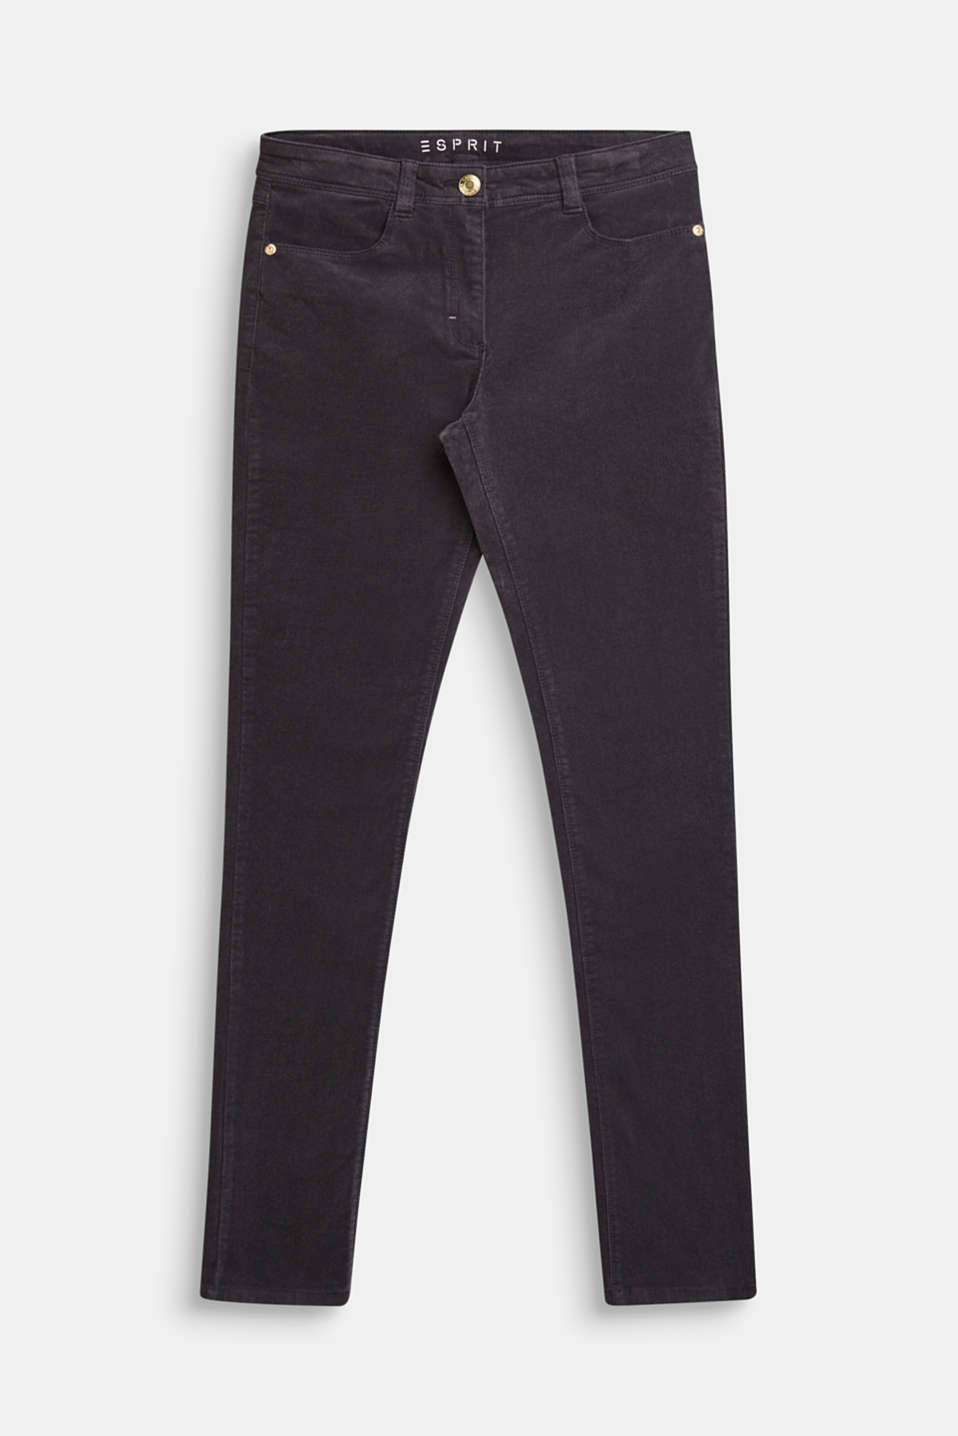 Stretch cotton corduroy trousers, LCLIGHT GUN META, detail image number 0